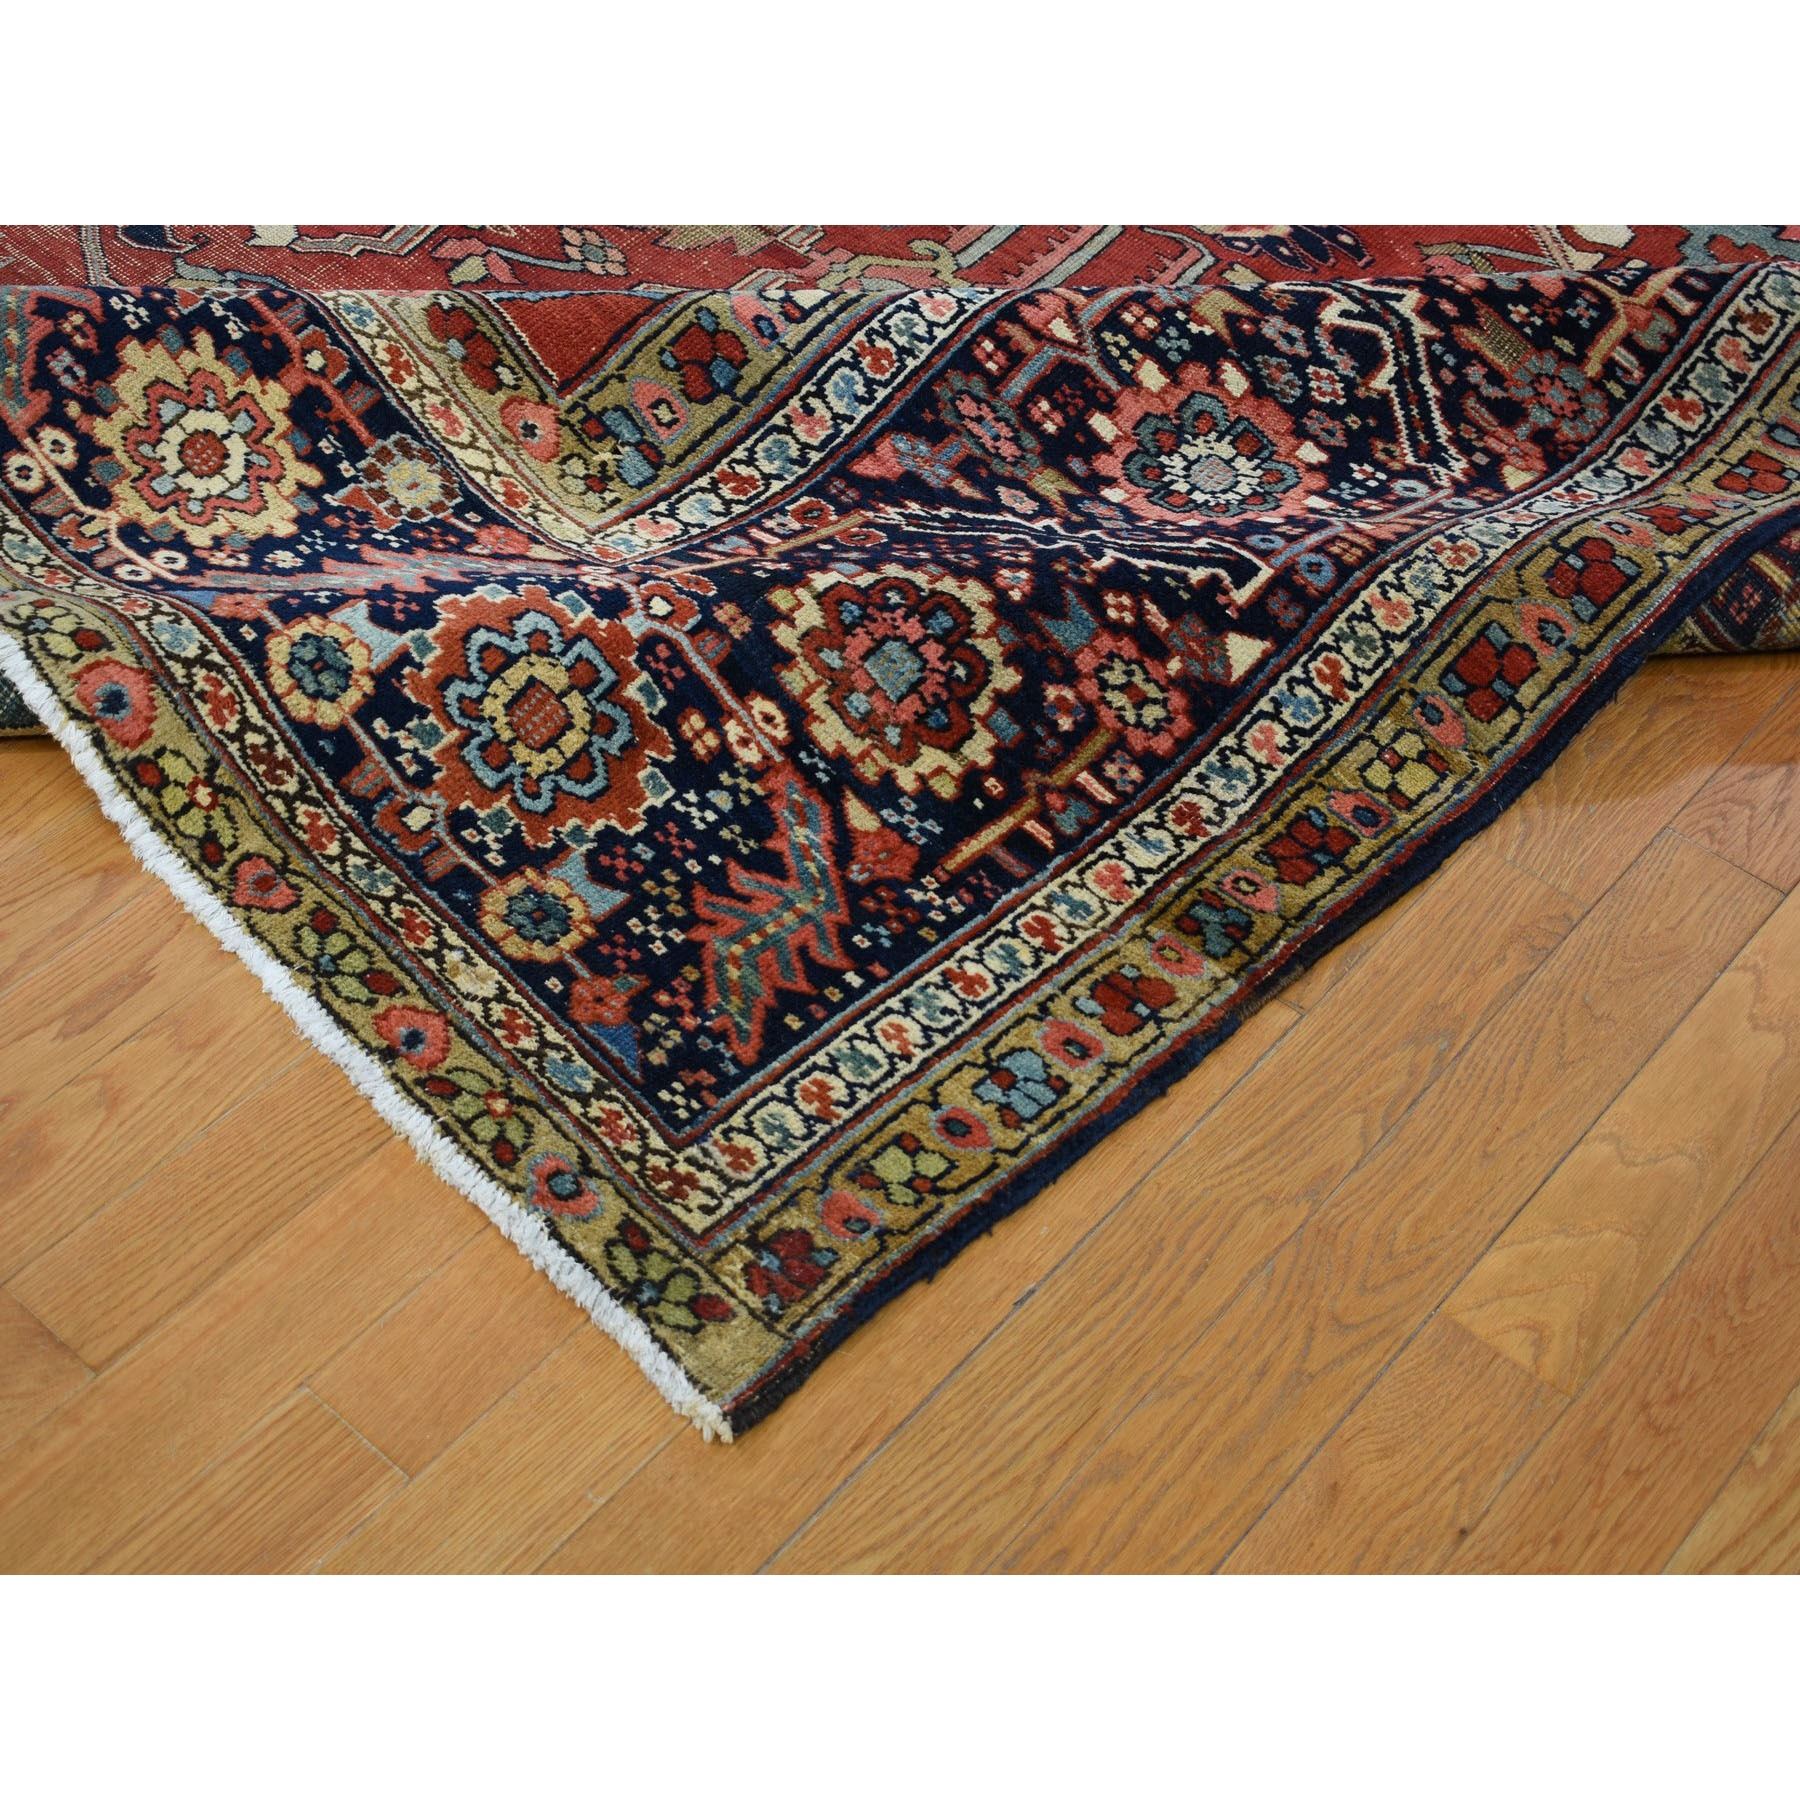 "12'1""x19'5"" Large Size Original Antique Persian Serapi Heriz Some Wear Clean Hand Knotted Oriental Rug"